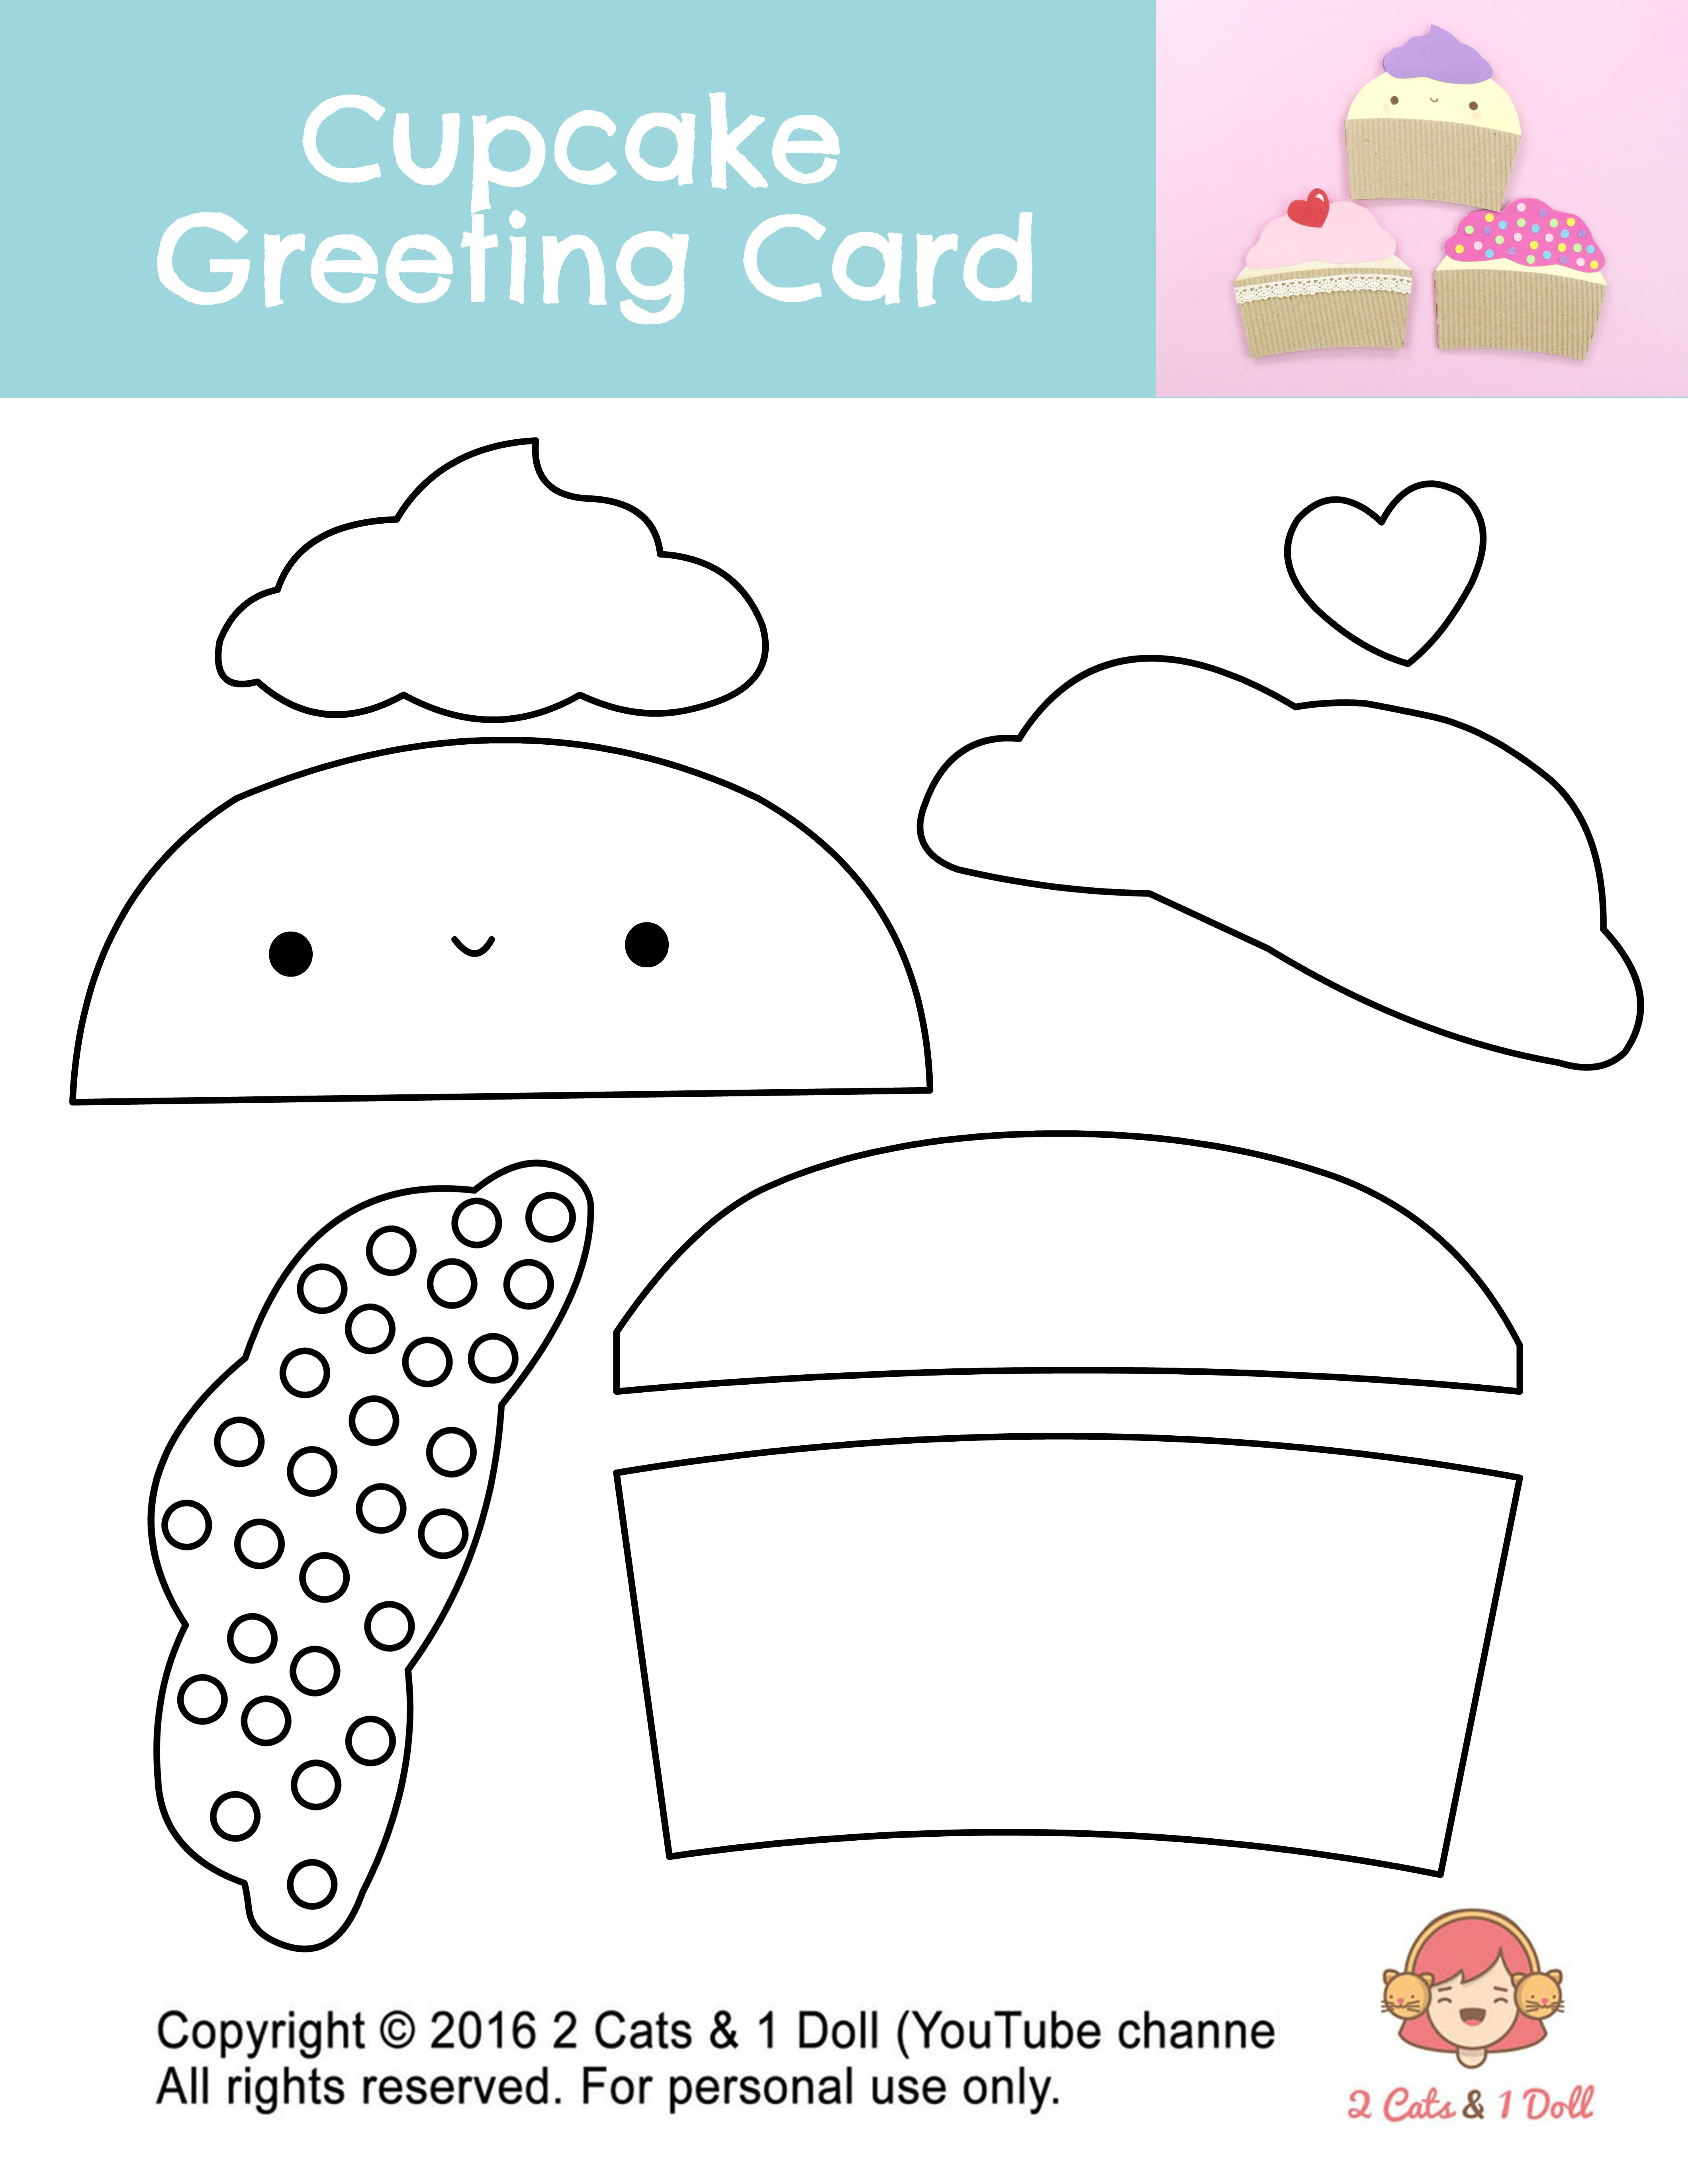 Diy Greeting Cards From Coffee Sleeves Recycled Crafts Diy